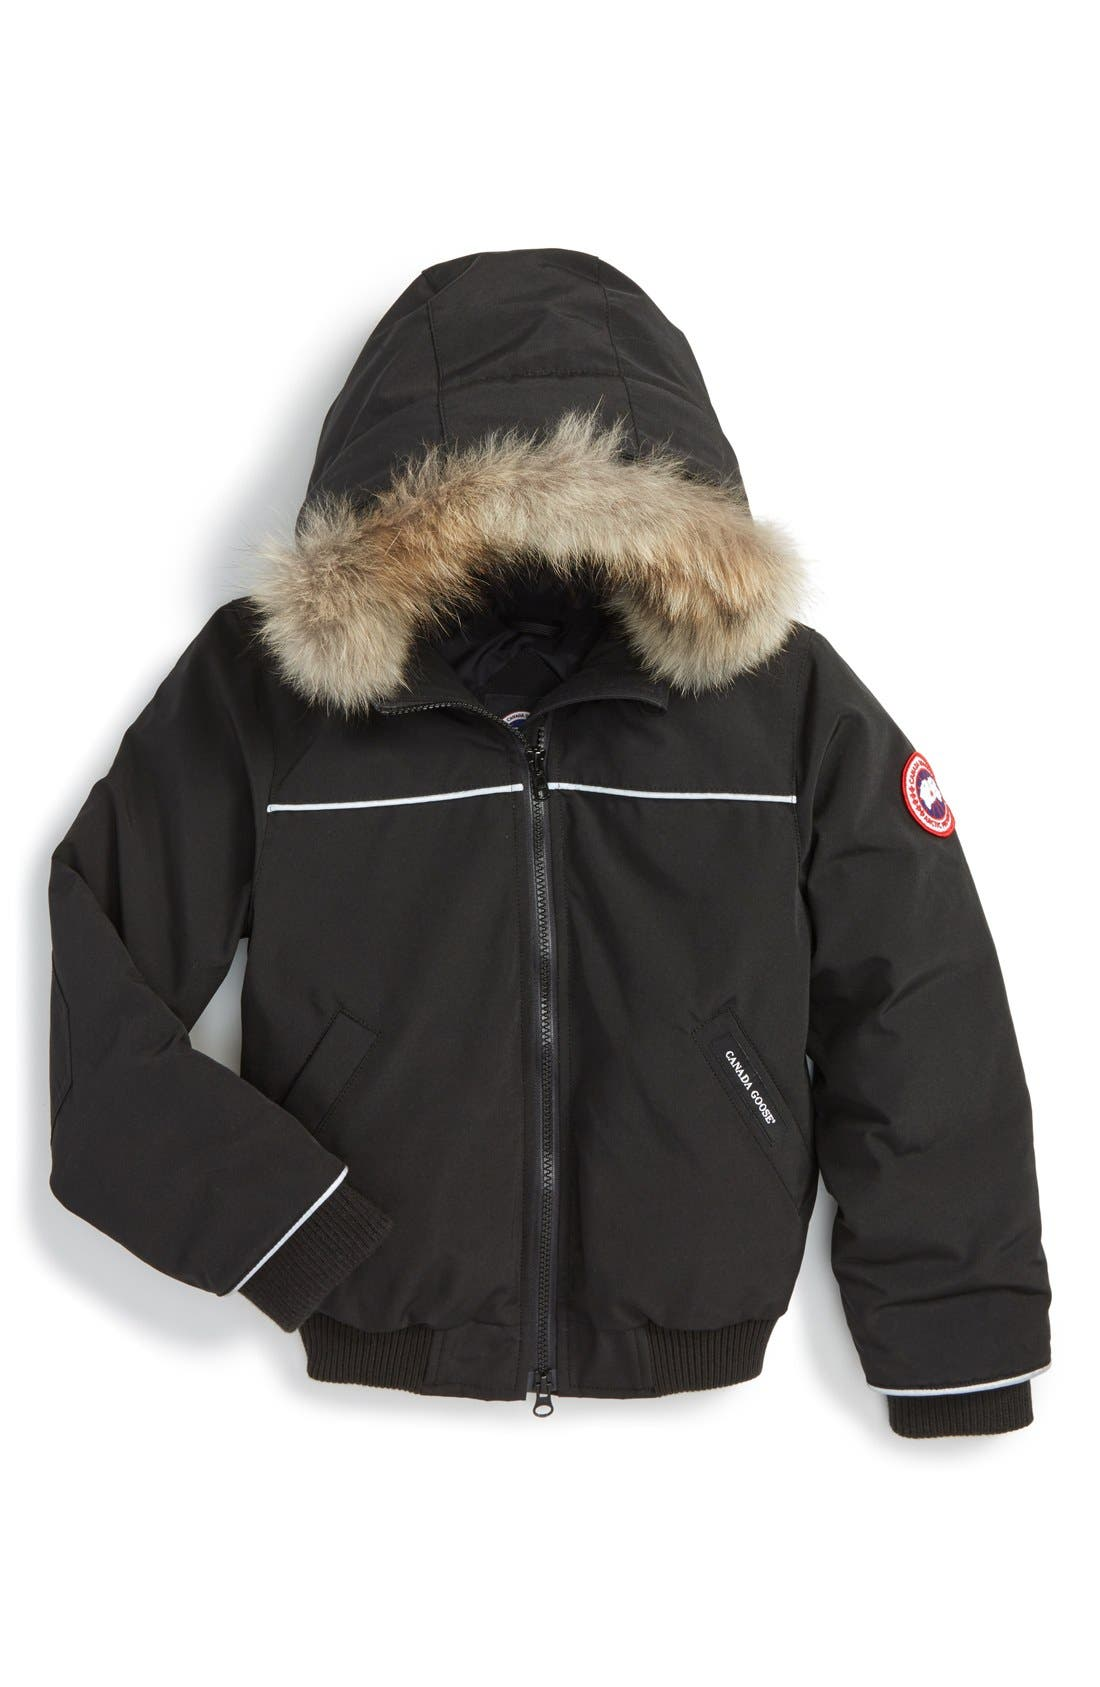 Alternate Image 1 Selected - Canada Goose 'Grizzly' Down Hooded Bomber Jacket with Genuine Coyote Fur Trim (Little Kids)